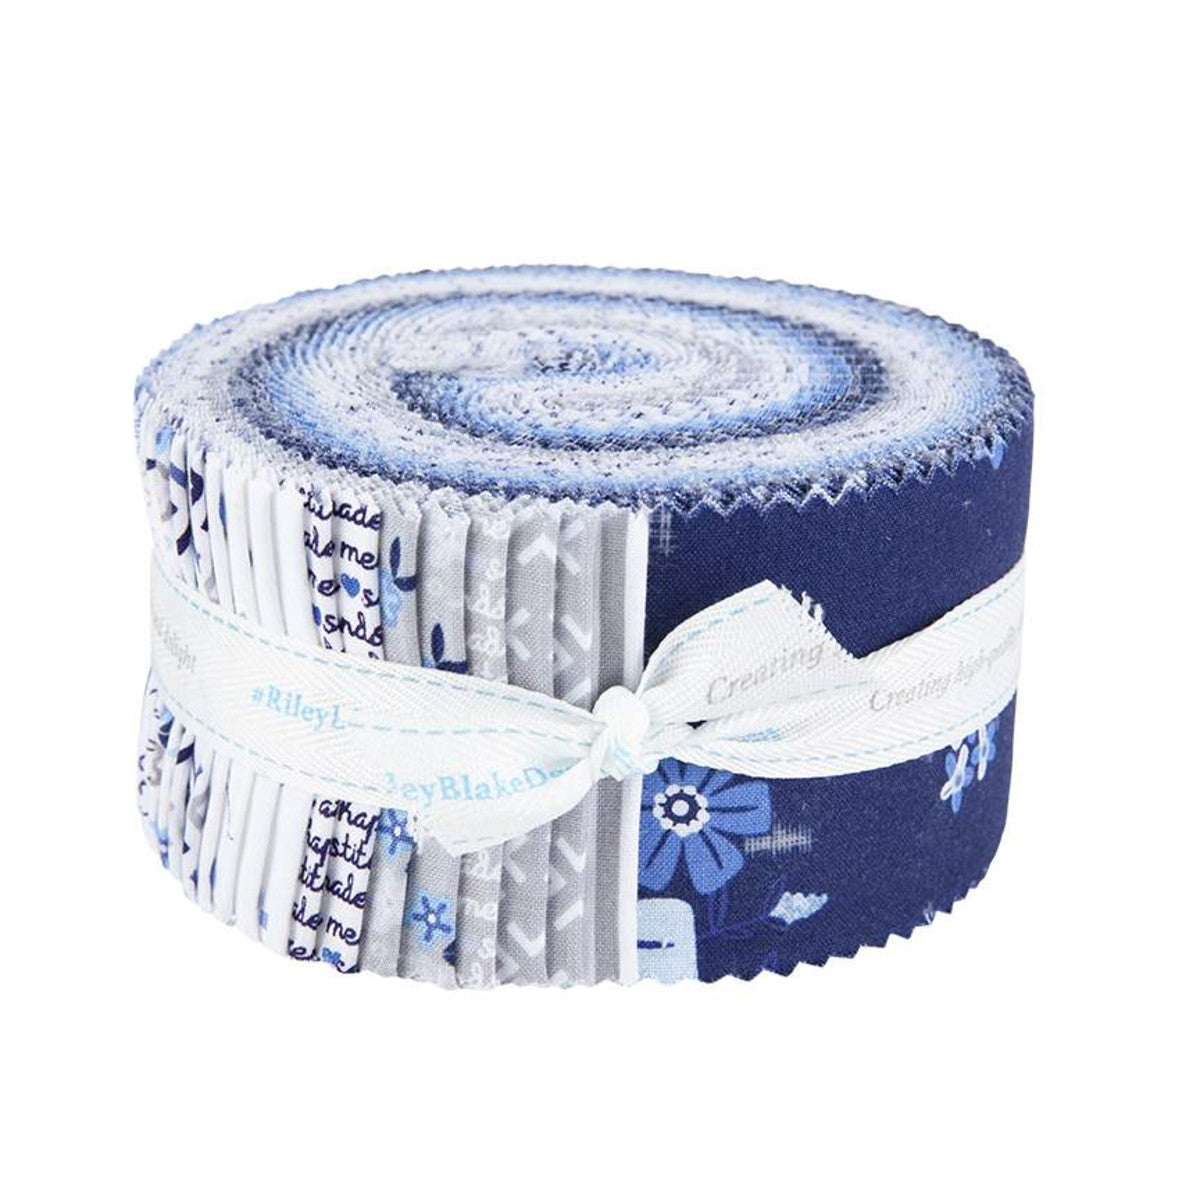 Blue Stitch - Rolie Polie 2-1/2